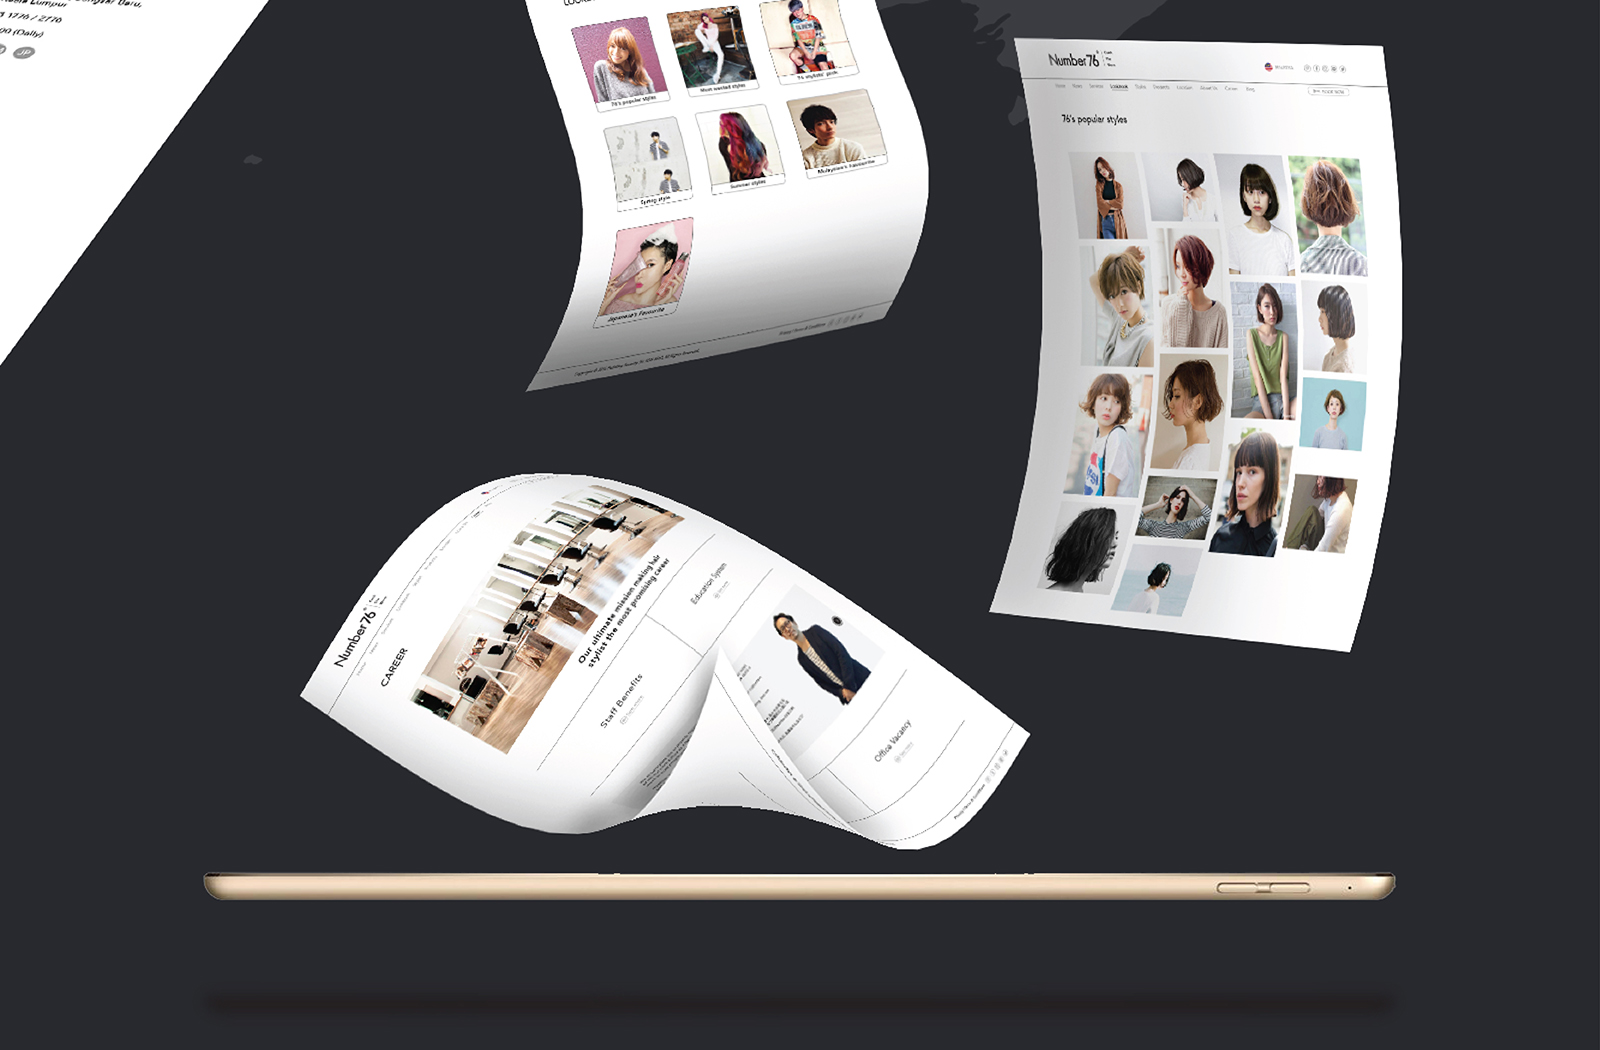 Number76 website user interface and user experience page design of news and gallery of hairstyles